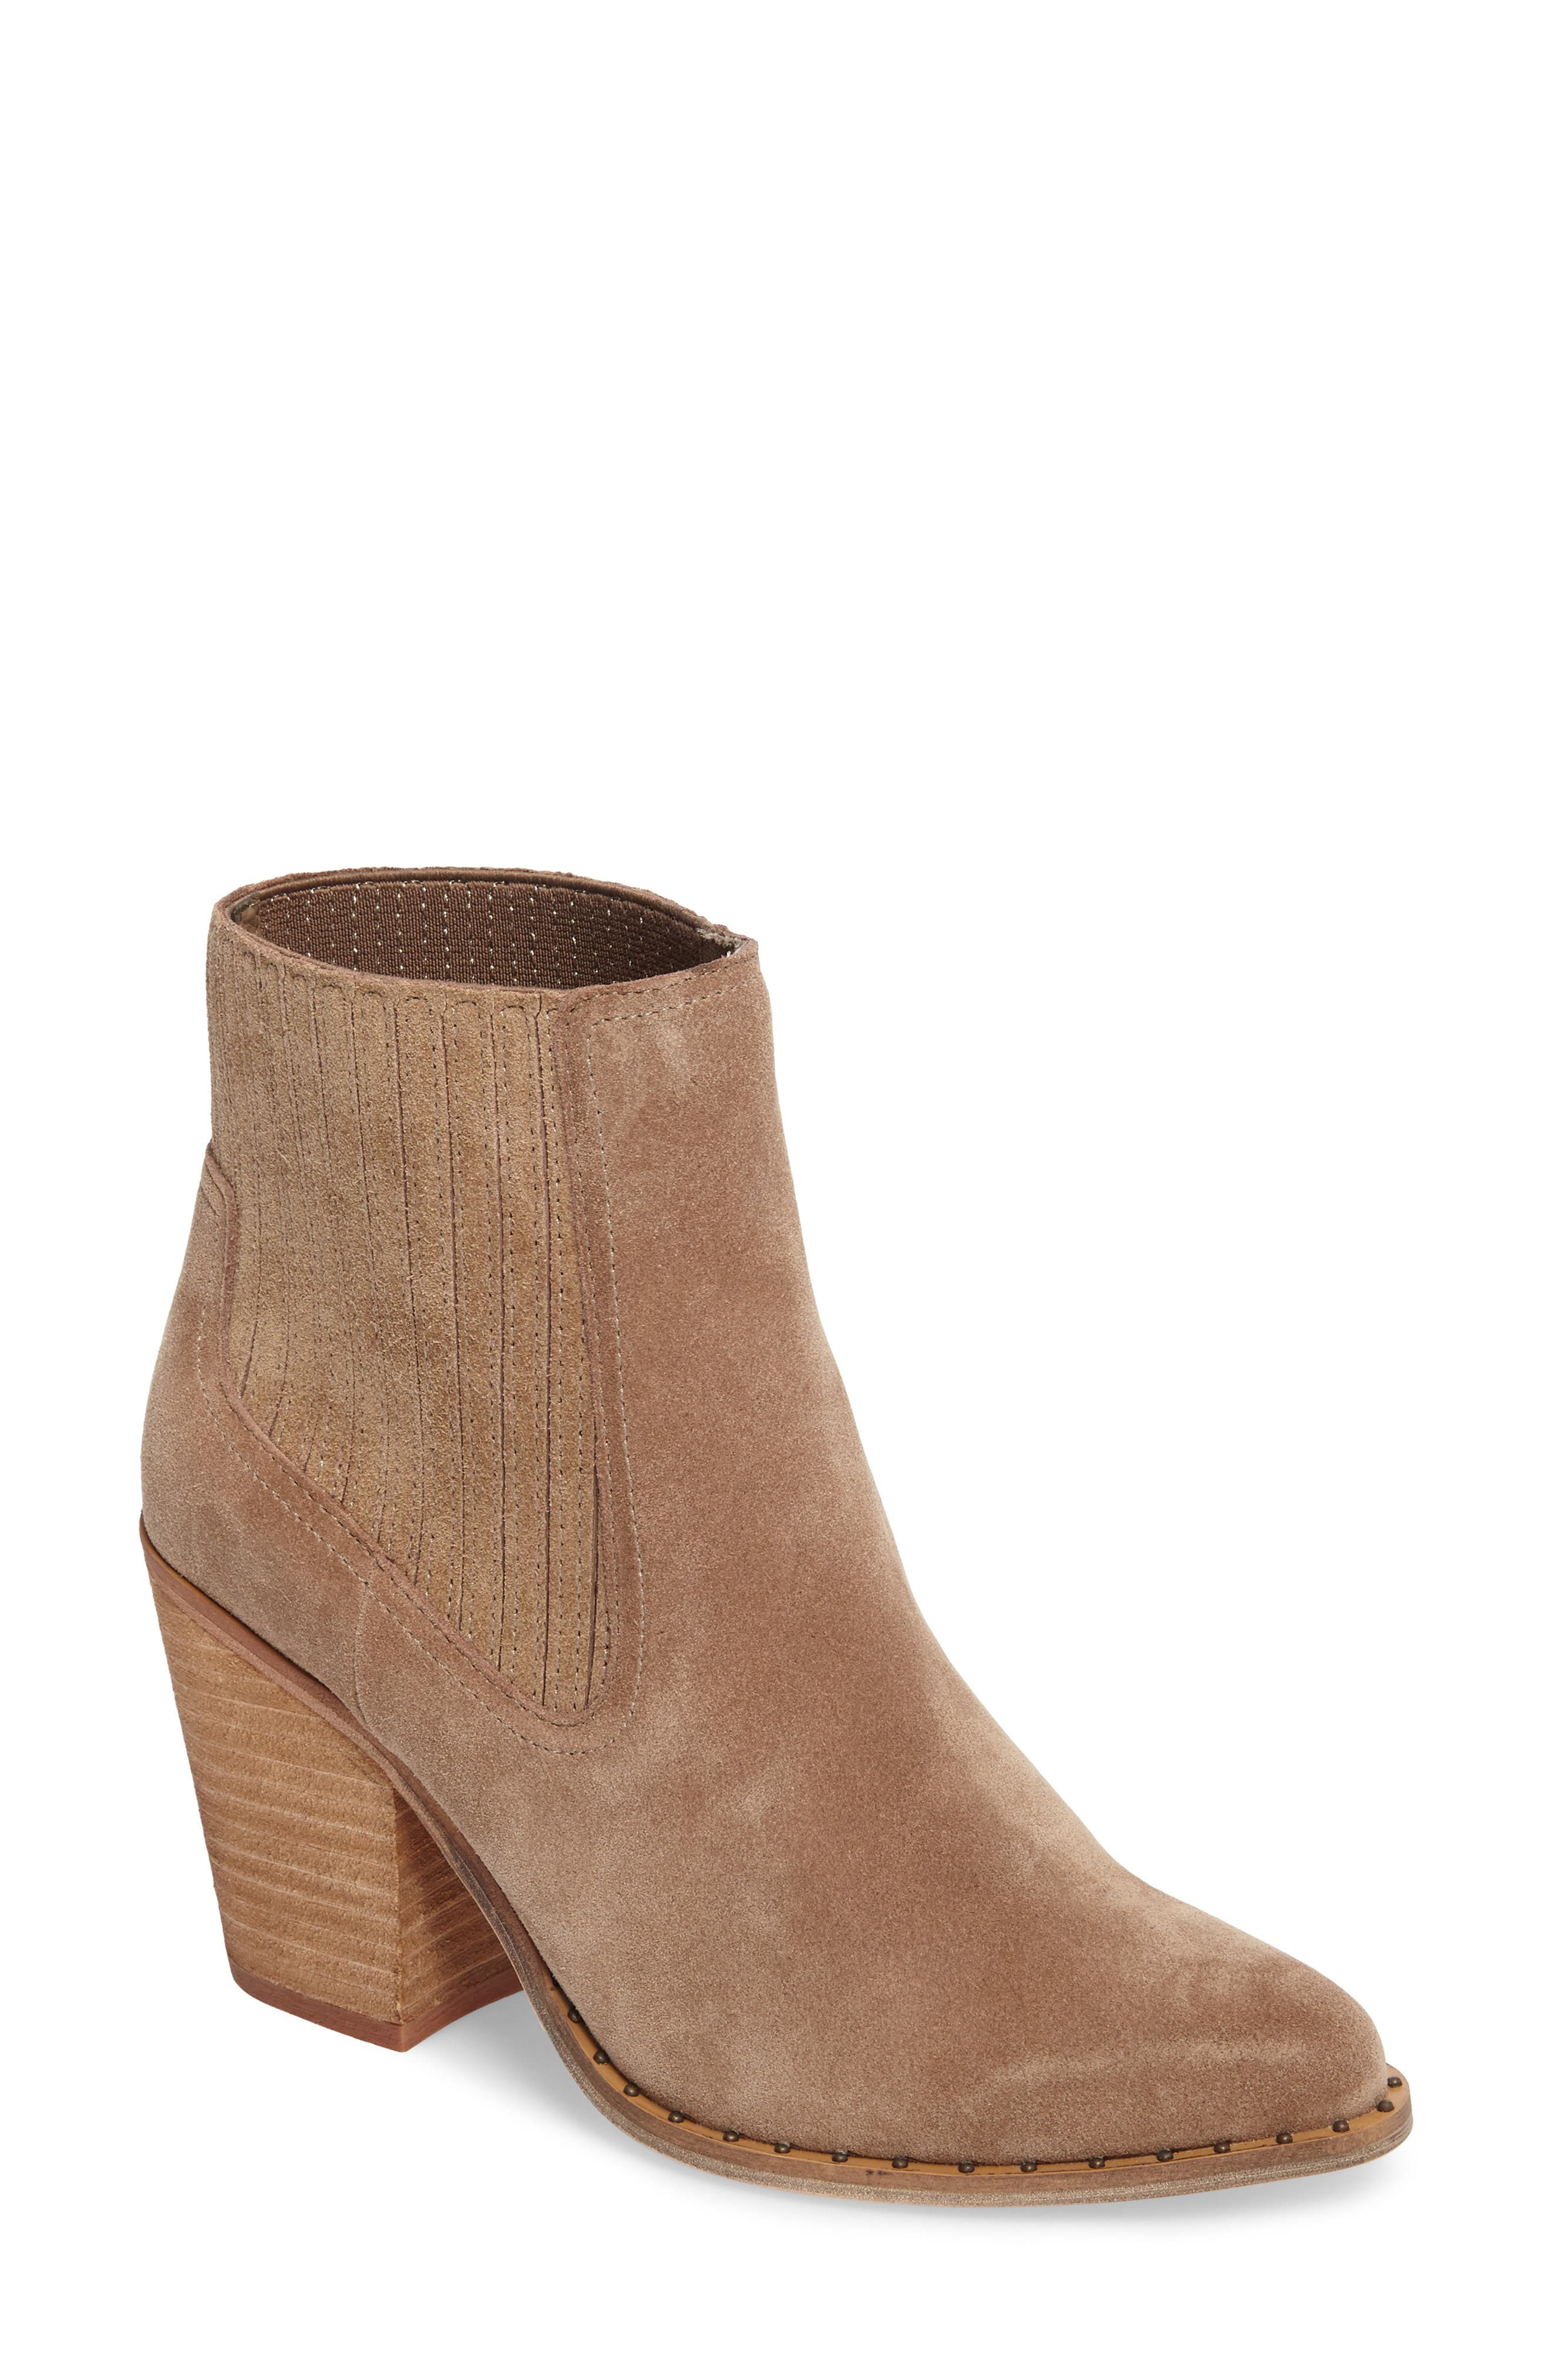 CHINESE LAUNDRY Sonya Bootie, Main, color, 200